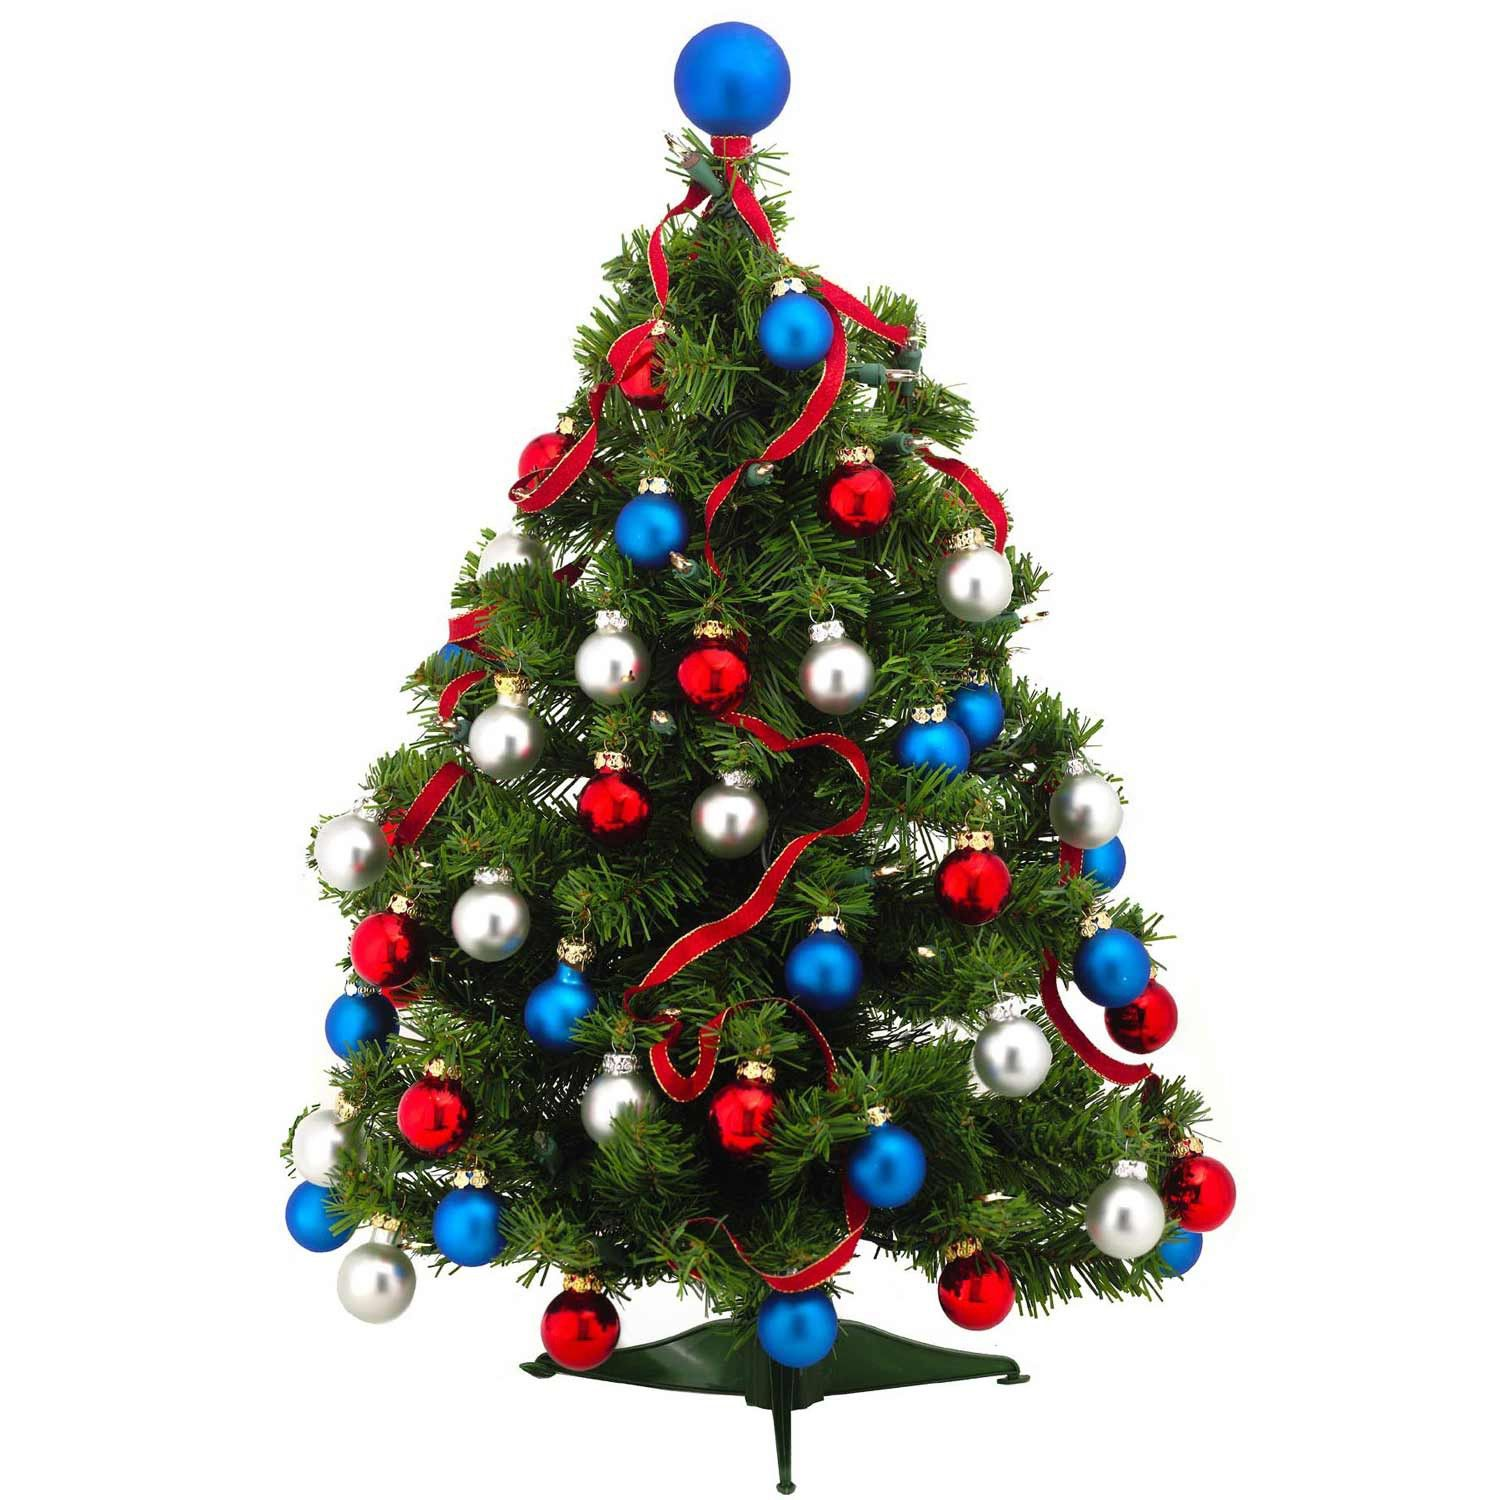 Red white and blue christmas ornaments - Red White And Blue Christmas Ornaments Google Search Christmas Decorating Pinterest